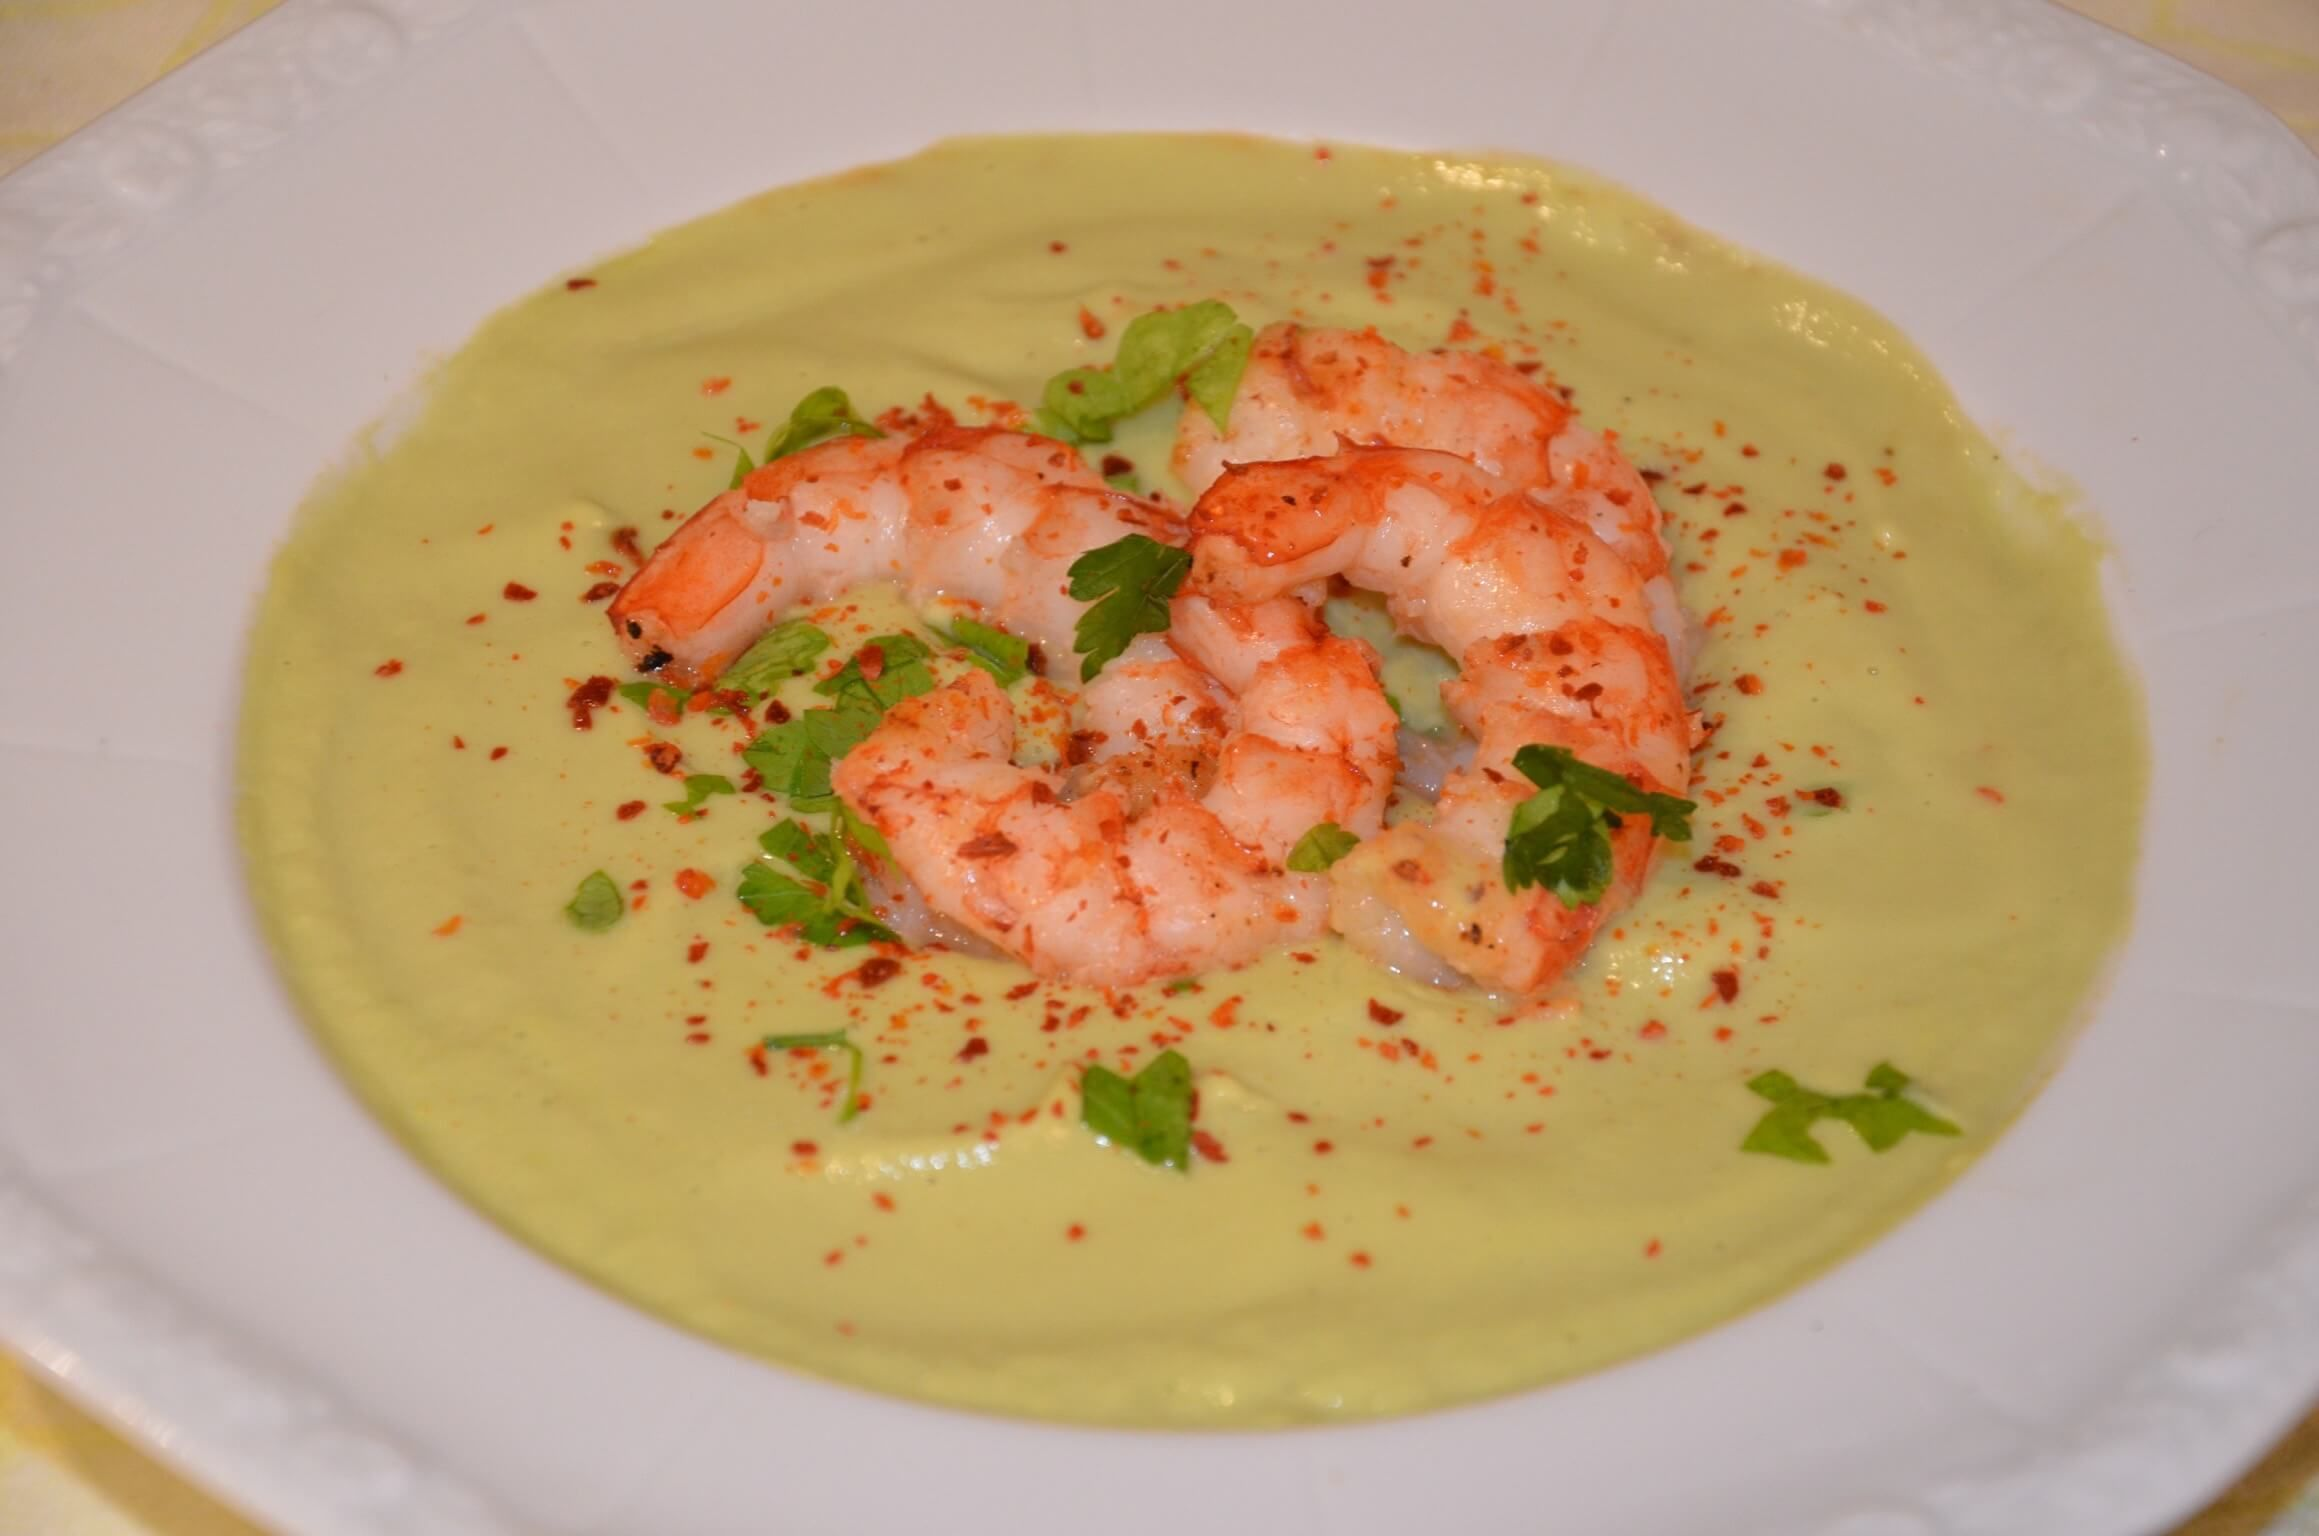 Limetten Avocado Suppe mit Garnelen